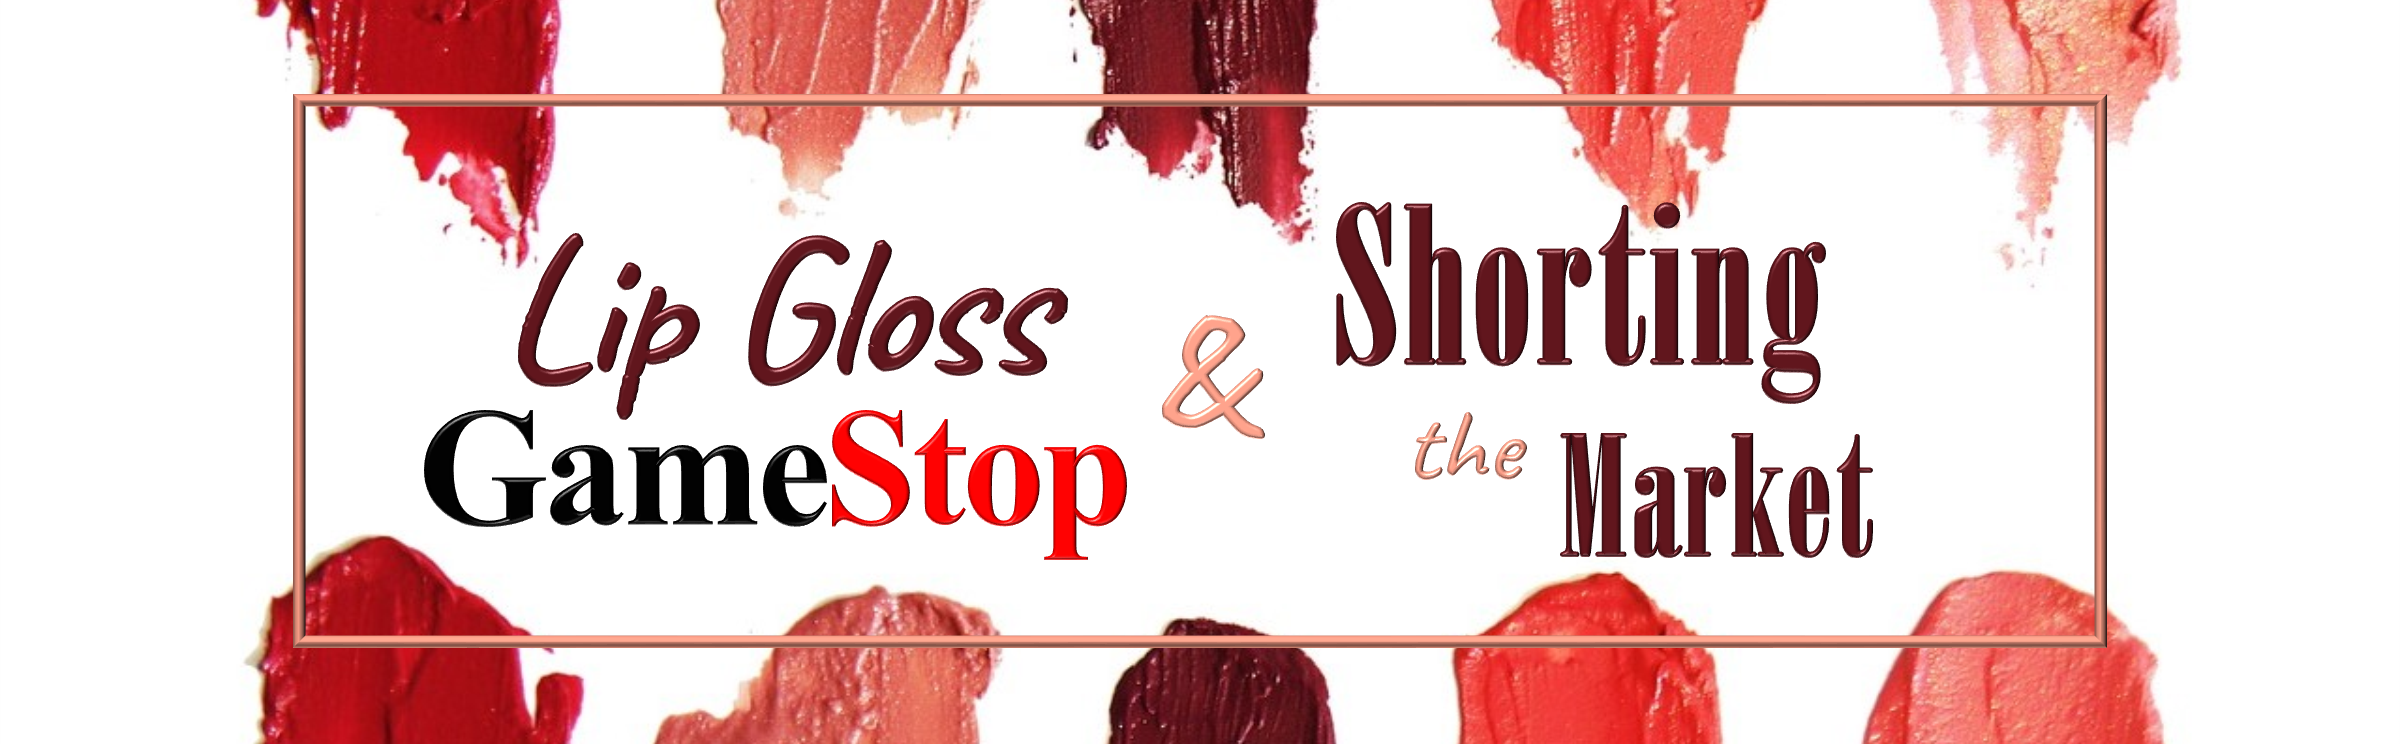 Lip Gloss, GameStop, and Shorting the Market